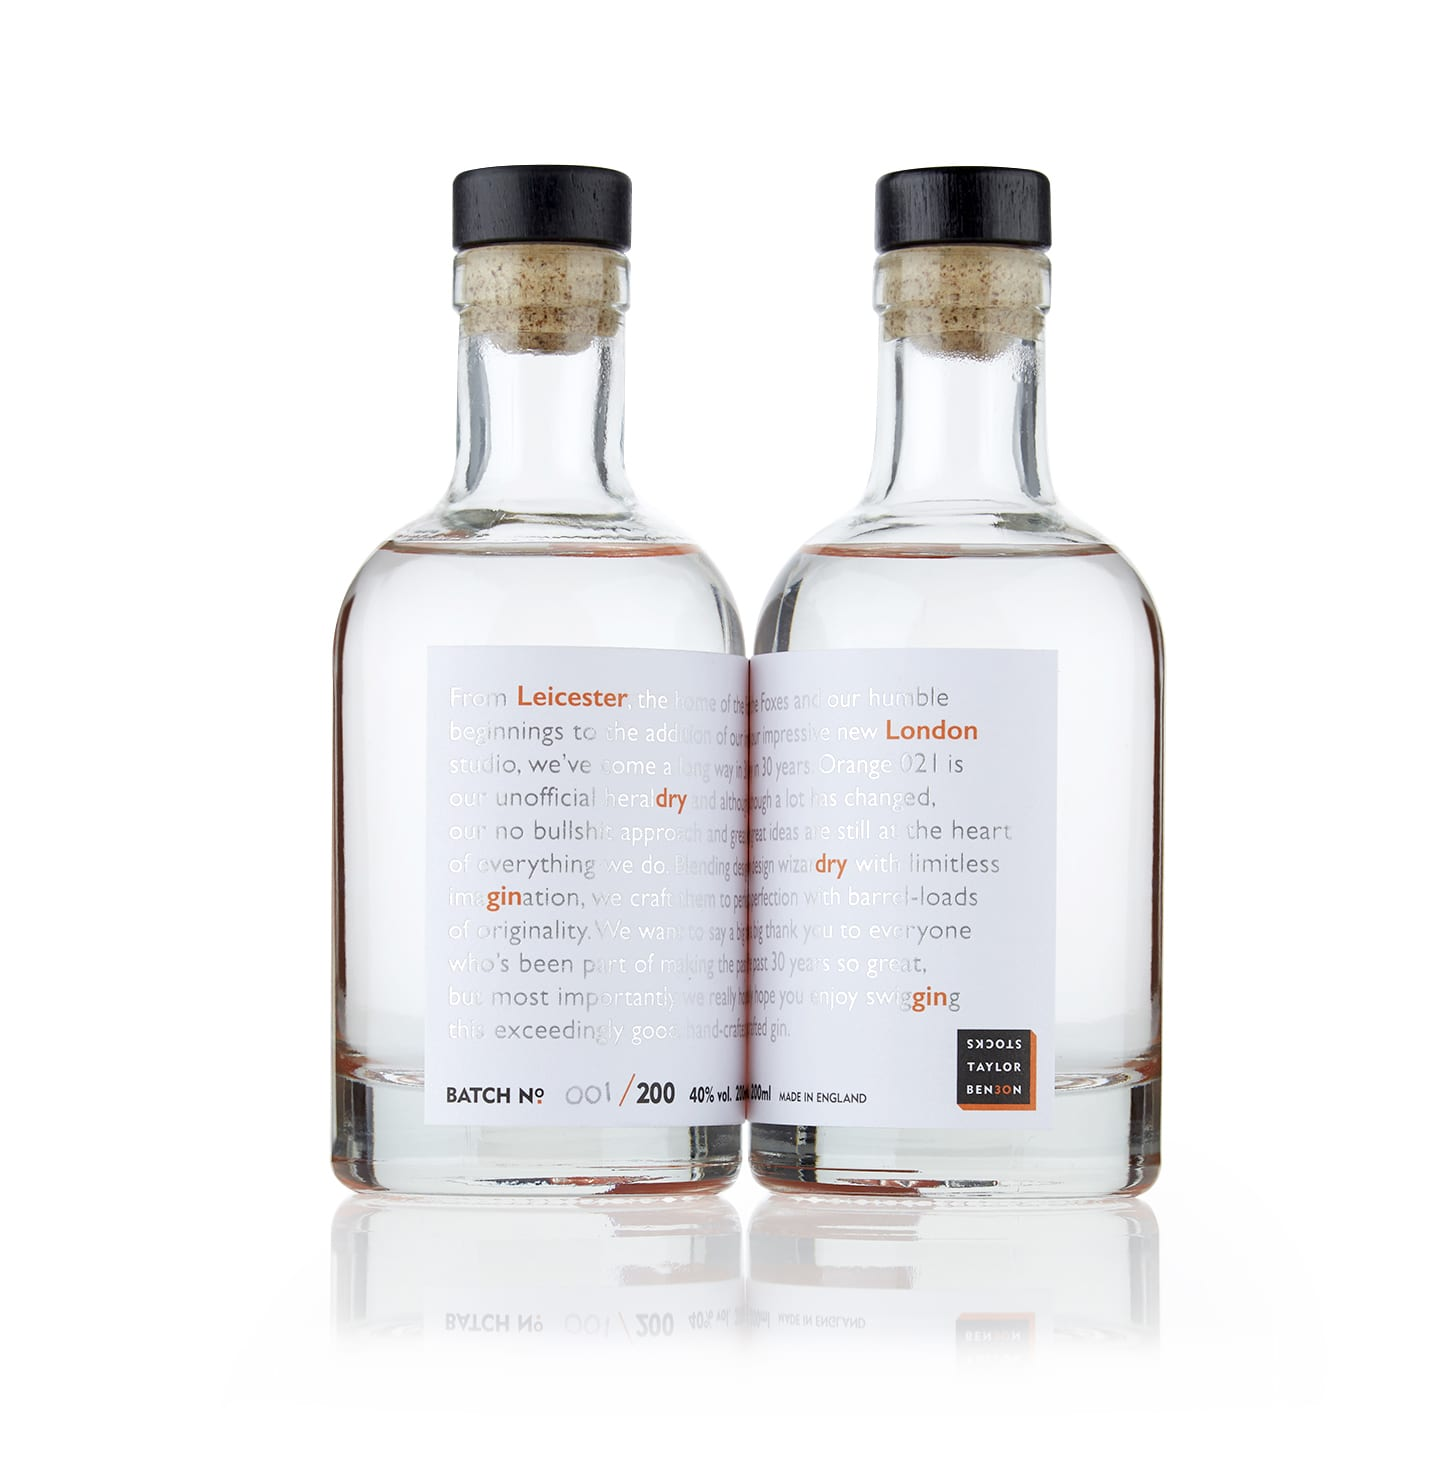 Mixing It Up Since 1988, OriGINality and ImaGINation Gin Packaging